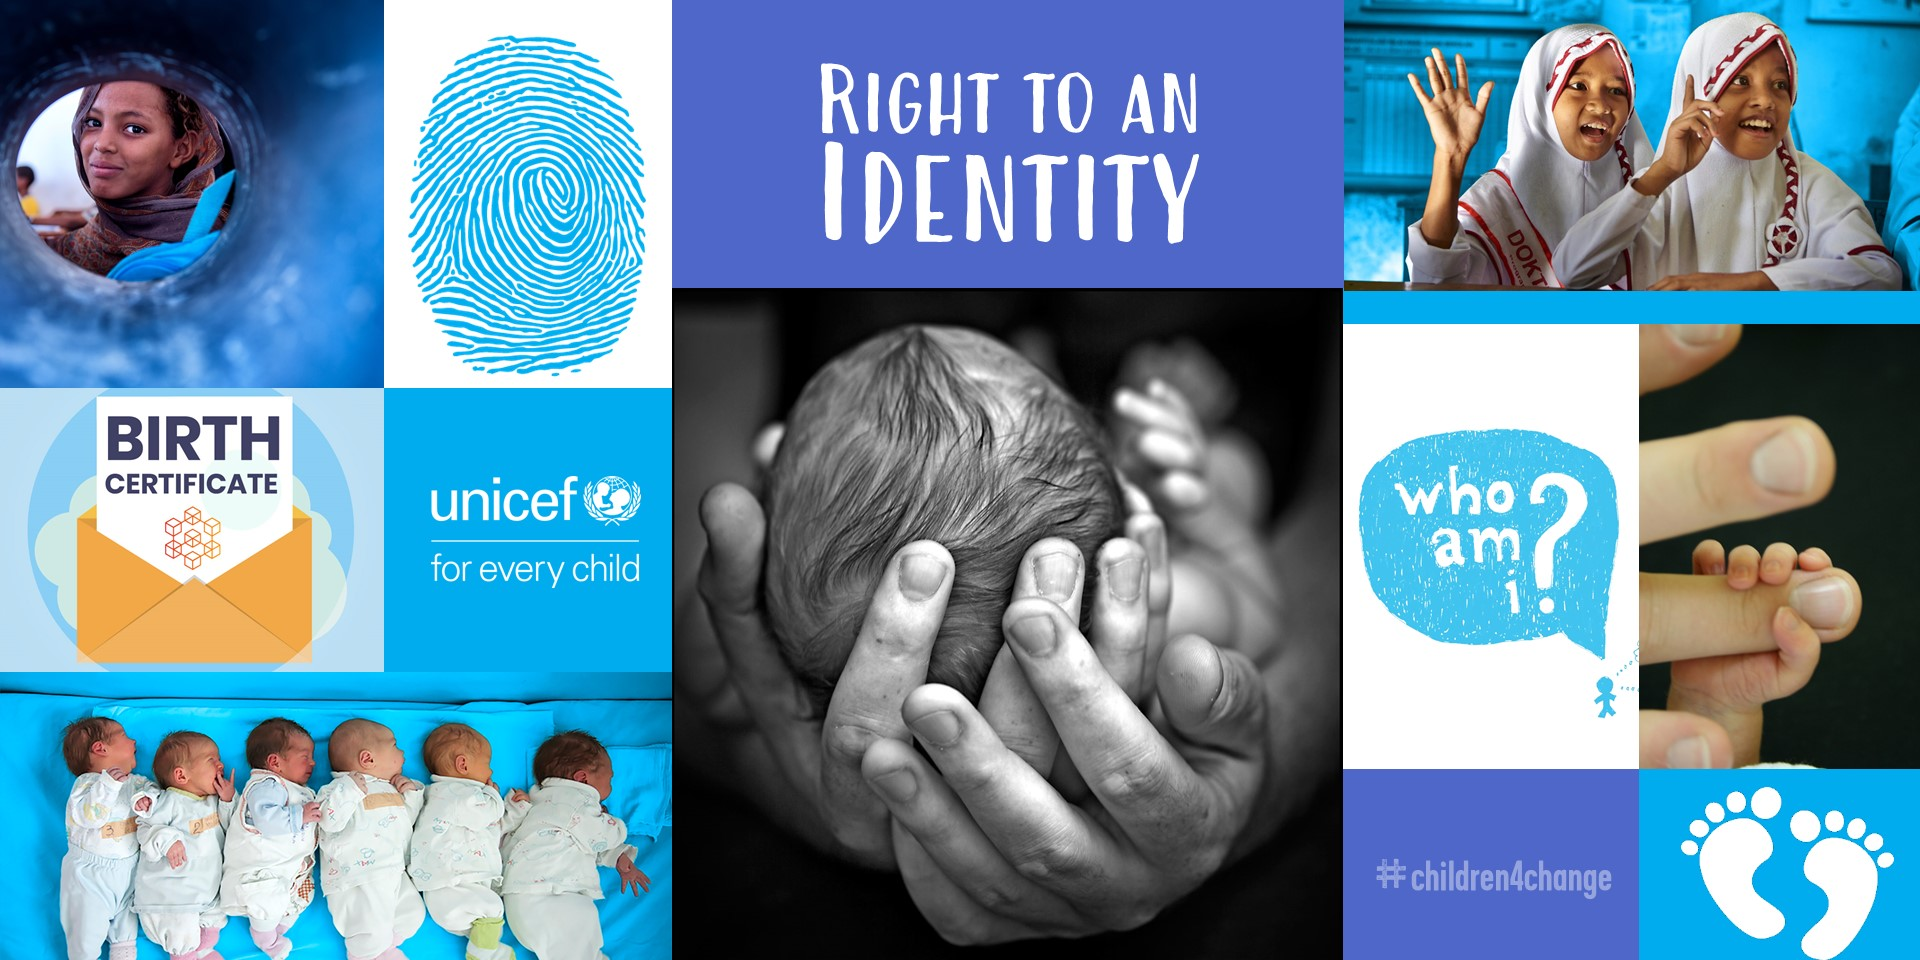 Photo collage on every person's right to an Identity.